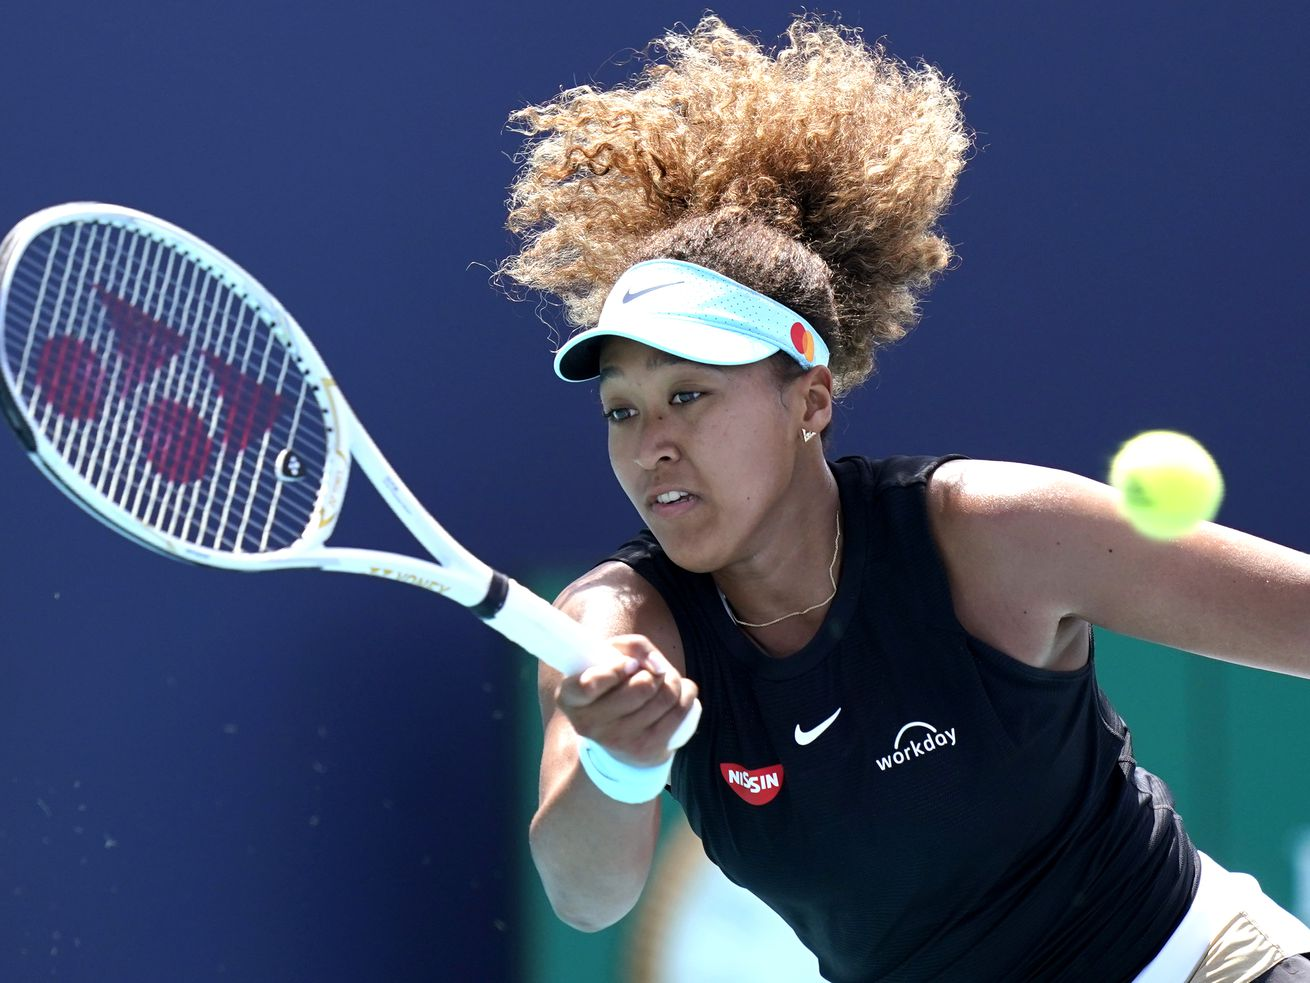 In this March 31, 2021 file photo, Naomi Osaka, of Japan, returns to Maria Sakkari, of Greece, during the quarterfinals of the Miami Open tennis tournament in Miami Gardens, Fla. Sponsors of Osaka are sticking by the her after she withdrew from the French Open citing mental health issues relating to the press conferences required for players. Osaka, a four-time Grand Slam champion, said Monday, May 31, she was withdrawing from the French Open for mental health issues.